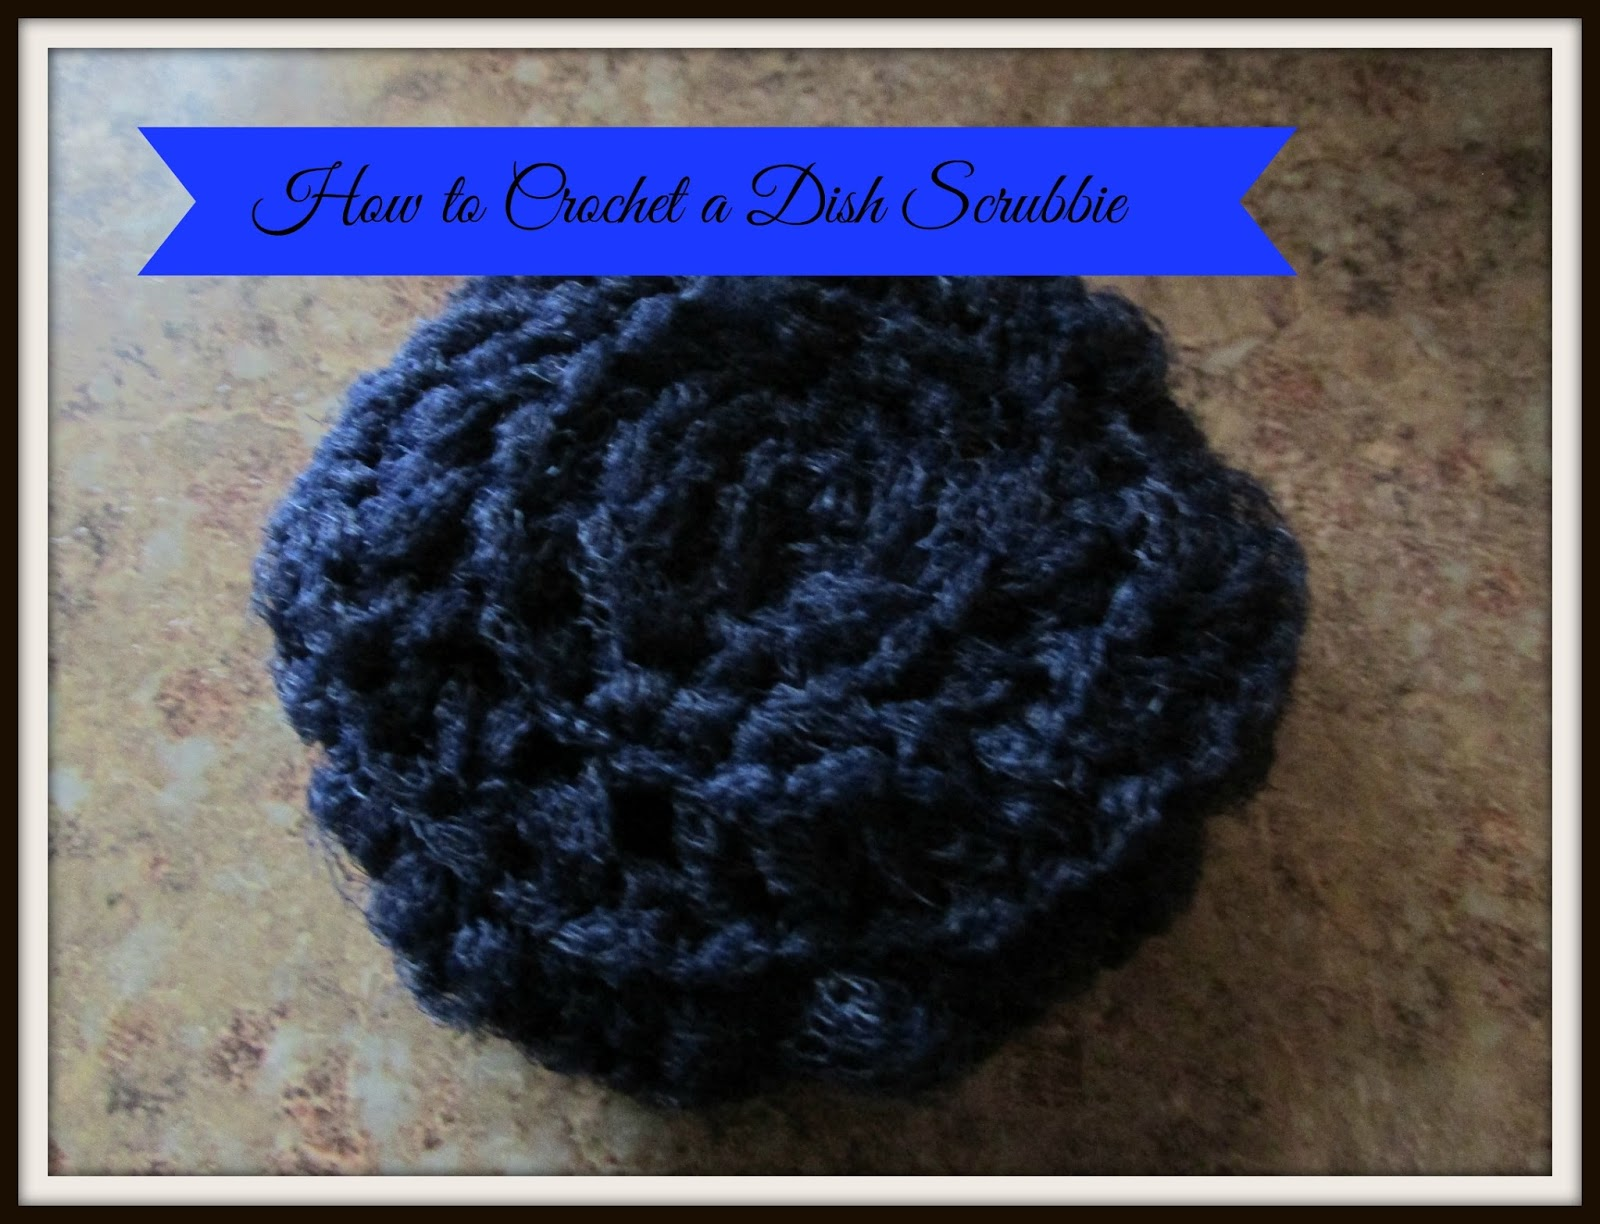 Vickies kitchen and garden how to crochet a dish scrubbie how to crochet a dish scrubbie bankloansurffo Gallery